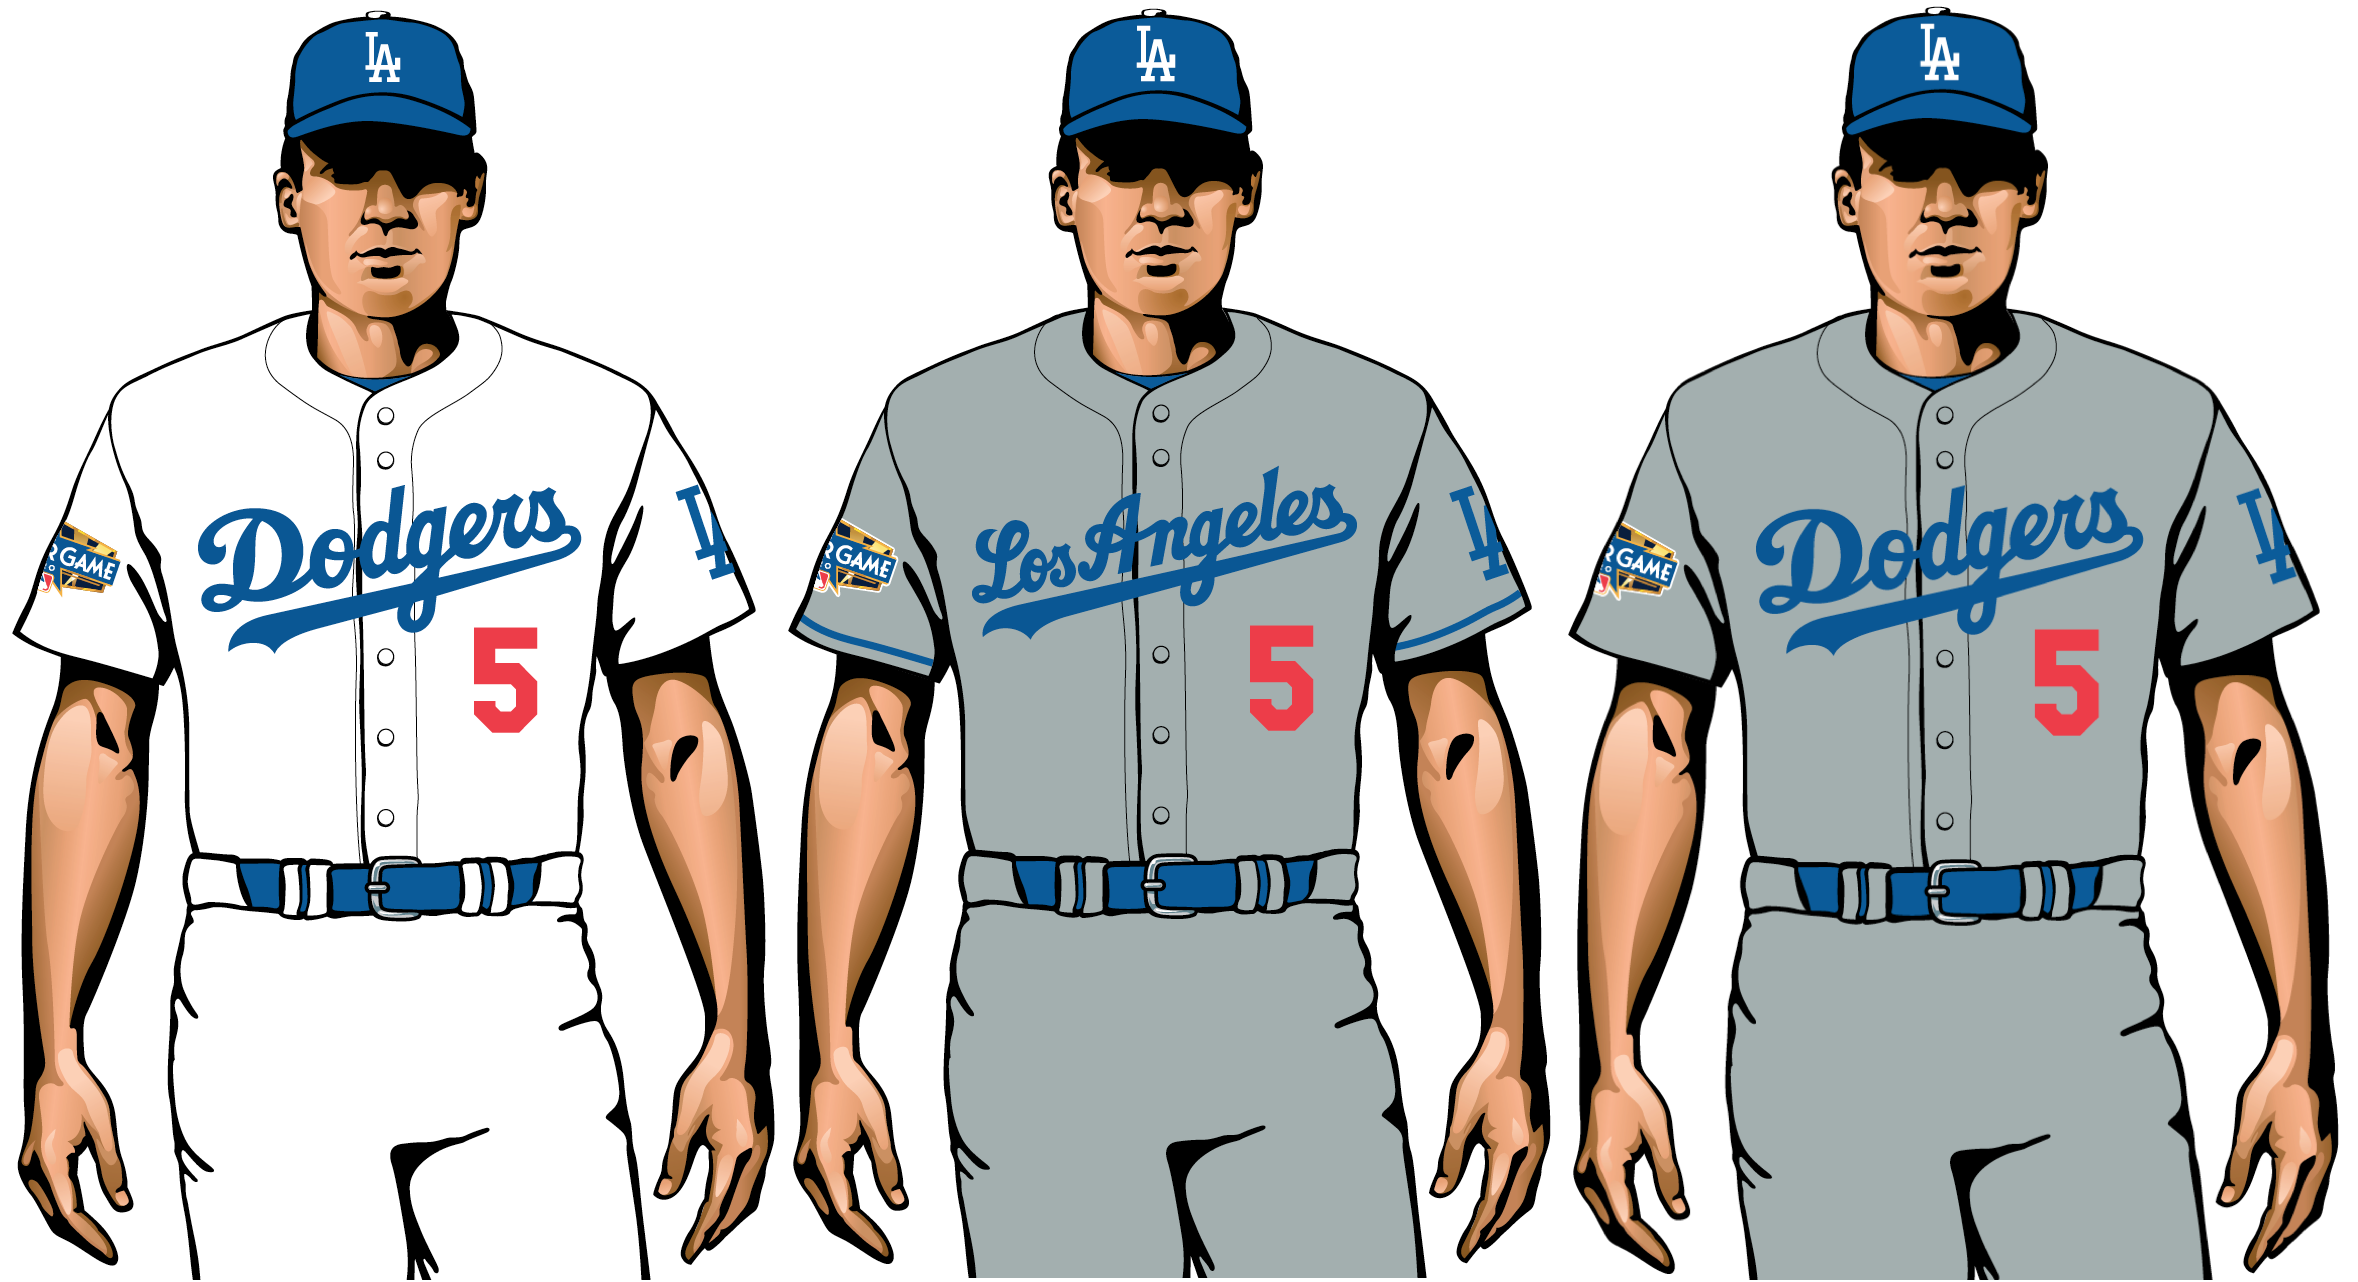 la dodgers 2020 uniforms